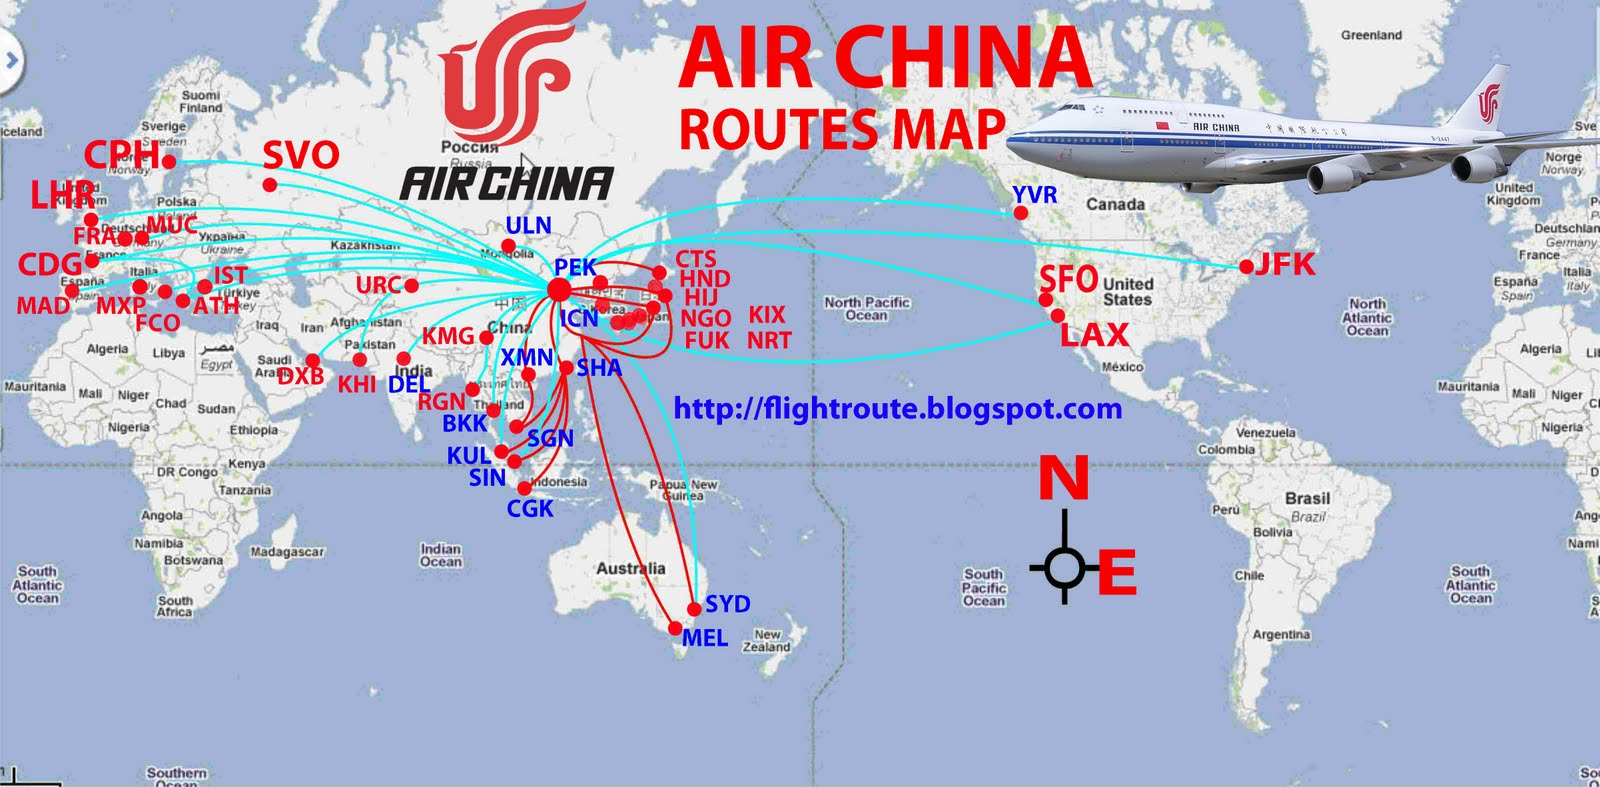 Airlines: Air China Routes Map